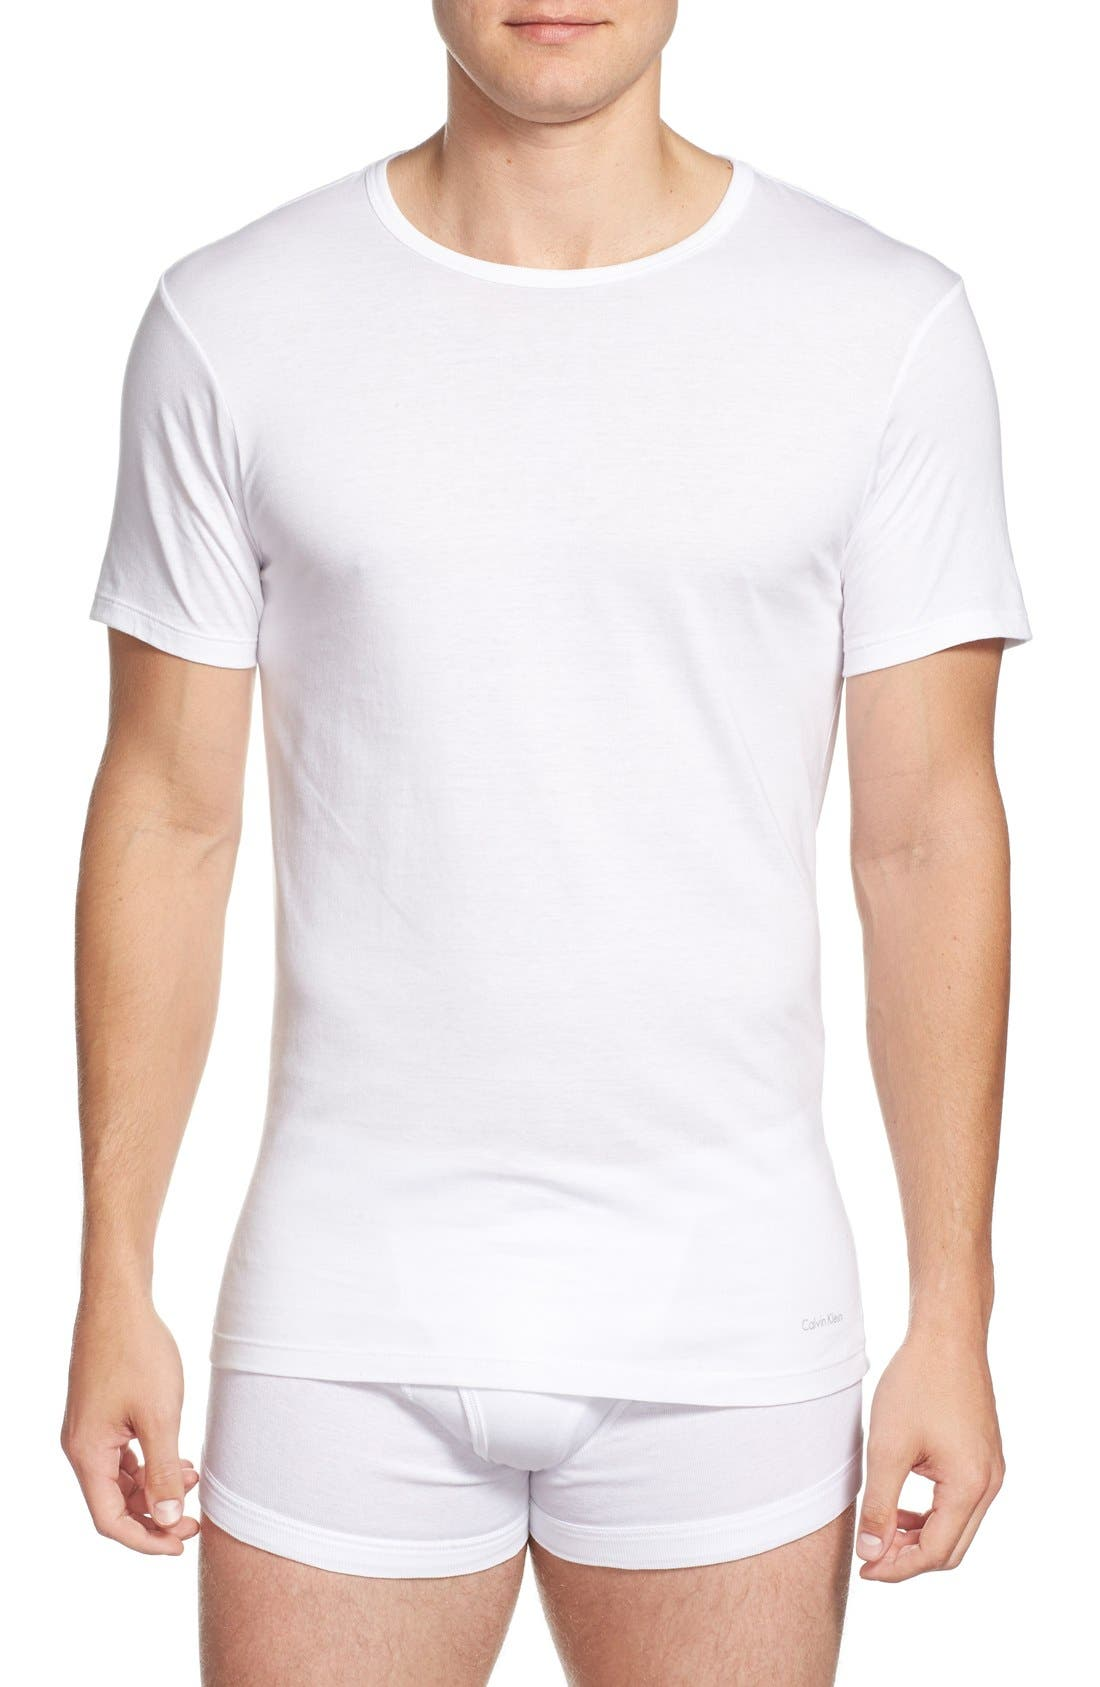 CALVIN KLEIN, Slim Fit 3-Pack Cotton T-Shirt, Main thumbnail 1, color, WHITE